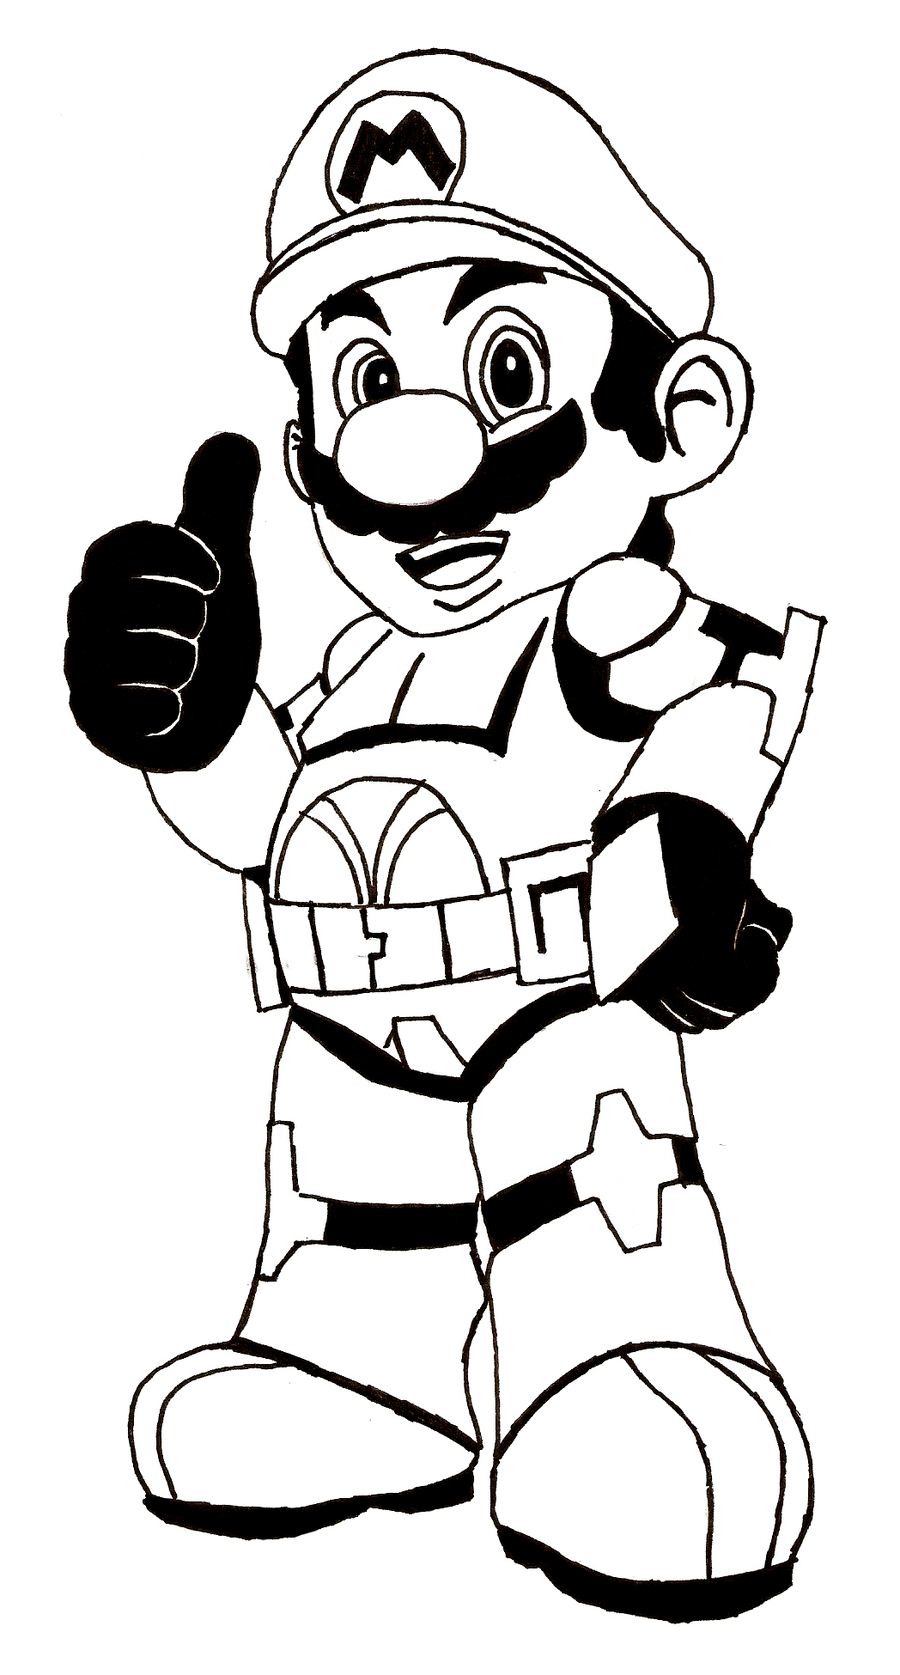 Free Mario Coloring Pages To Print